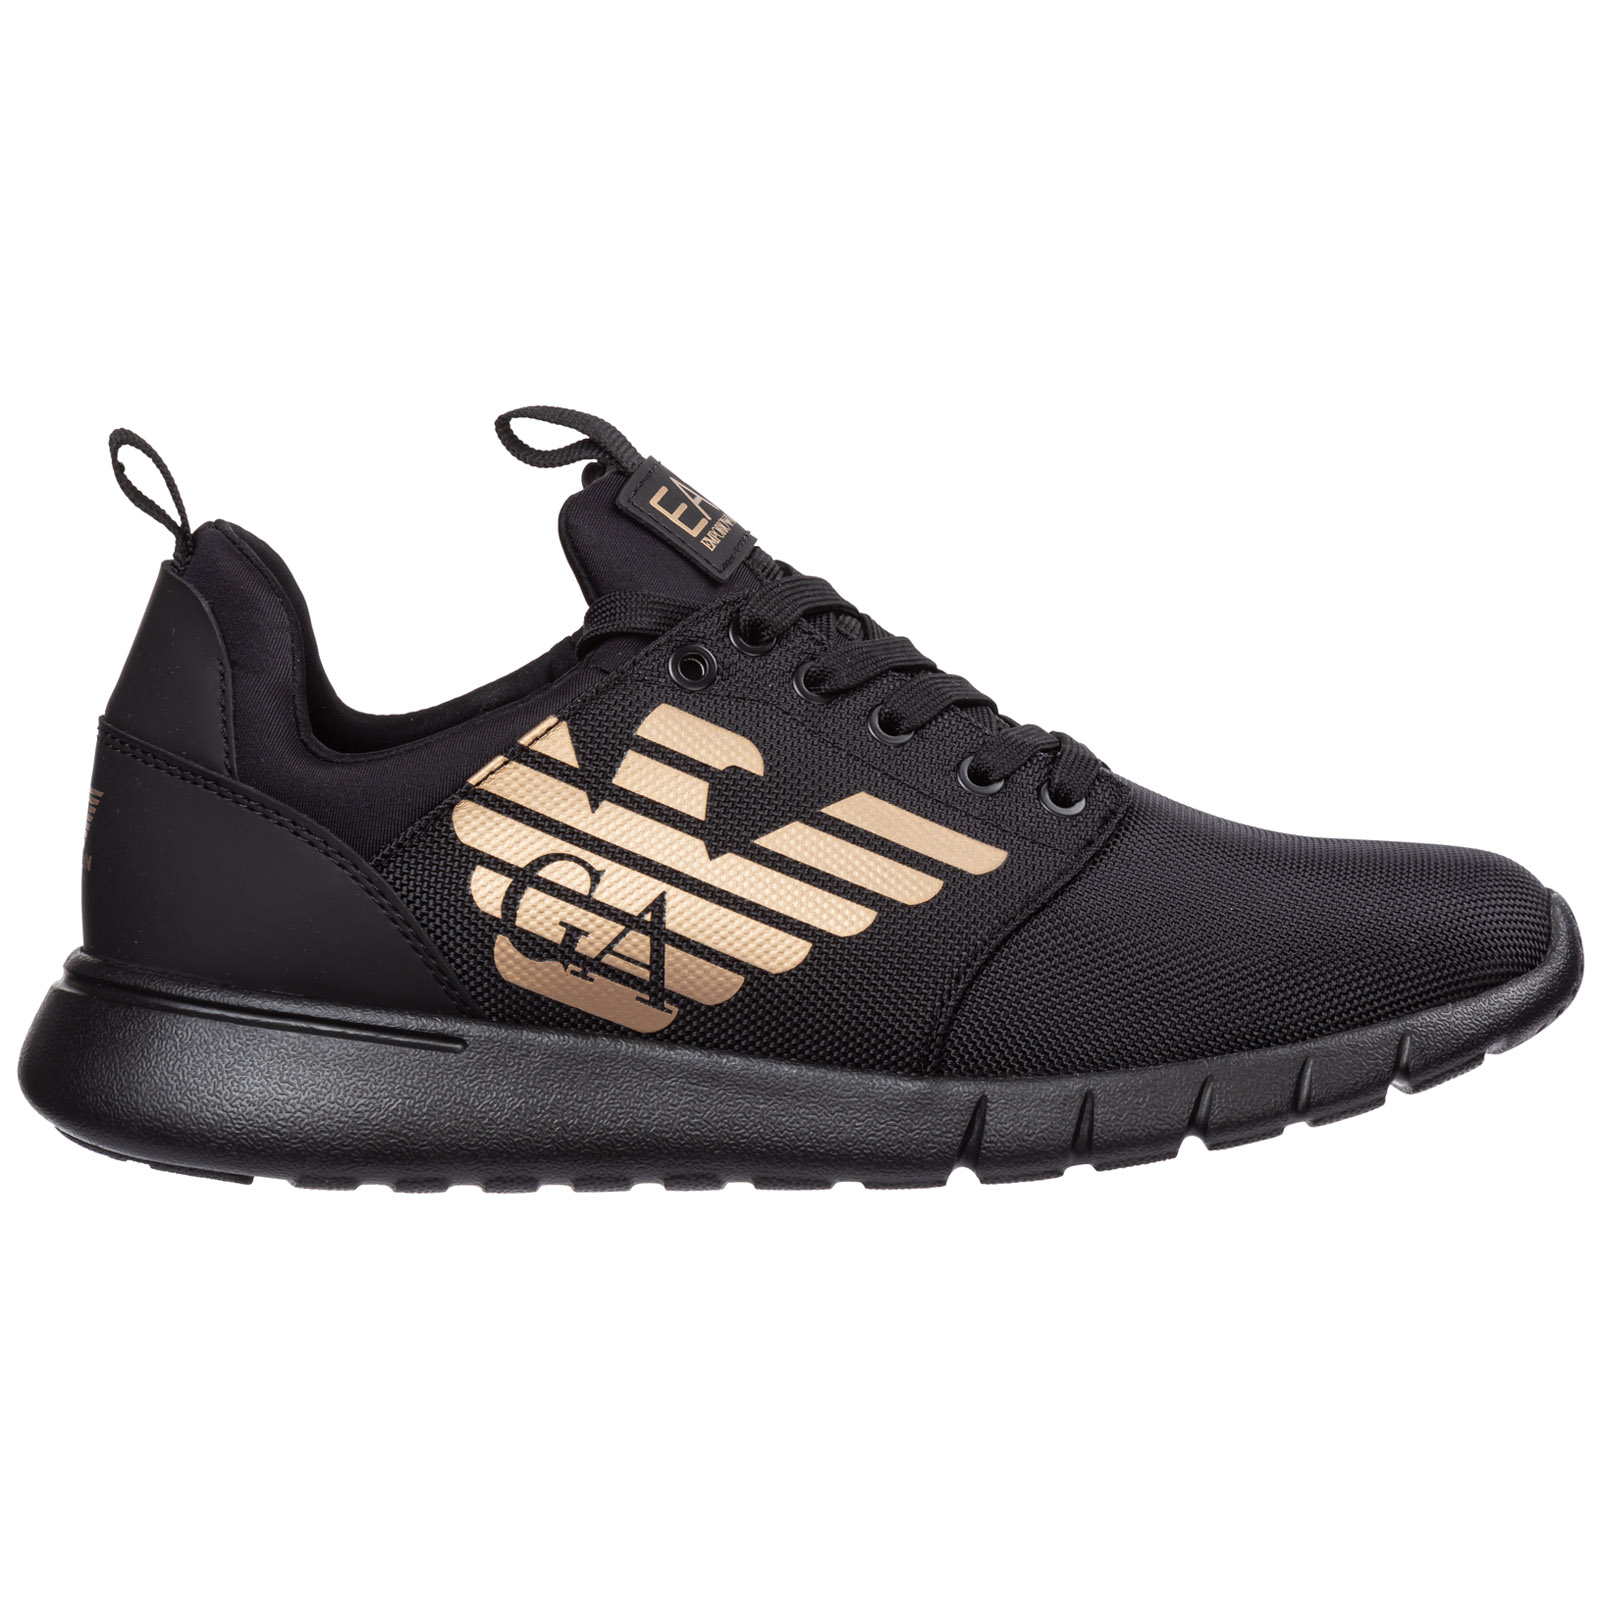 sports shoes 36af2 24c5e Scarpe sneakers uomo